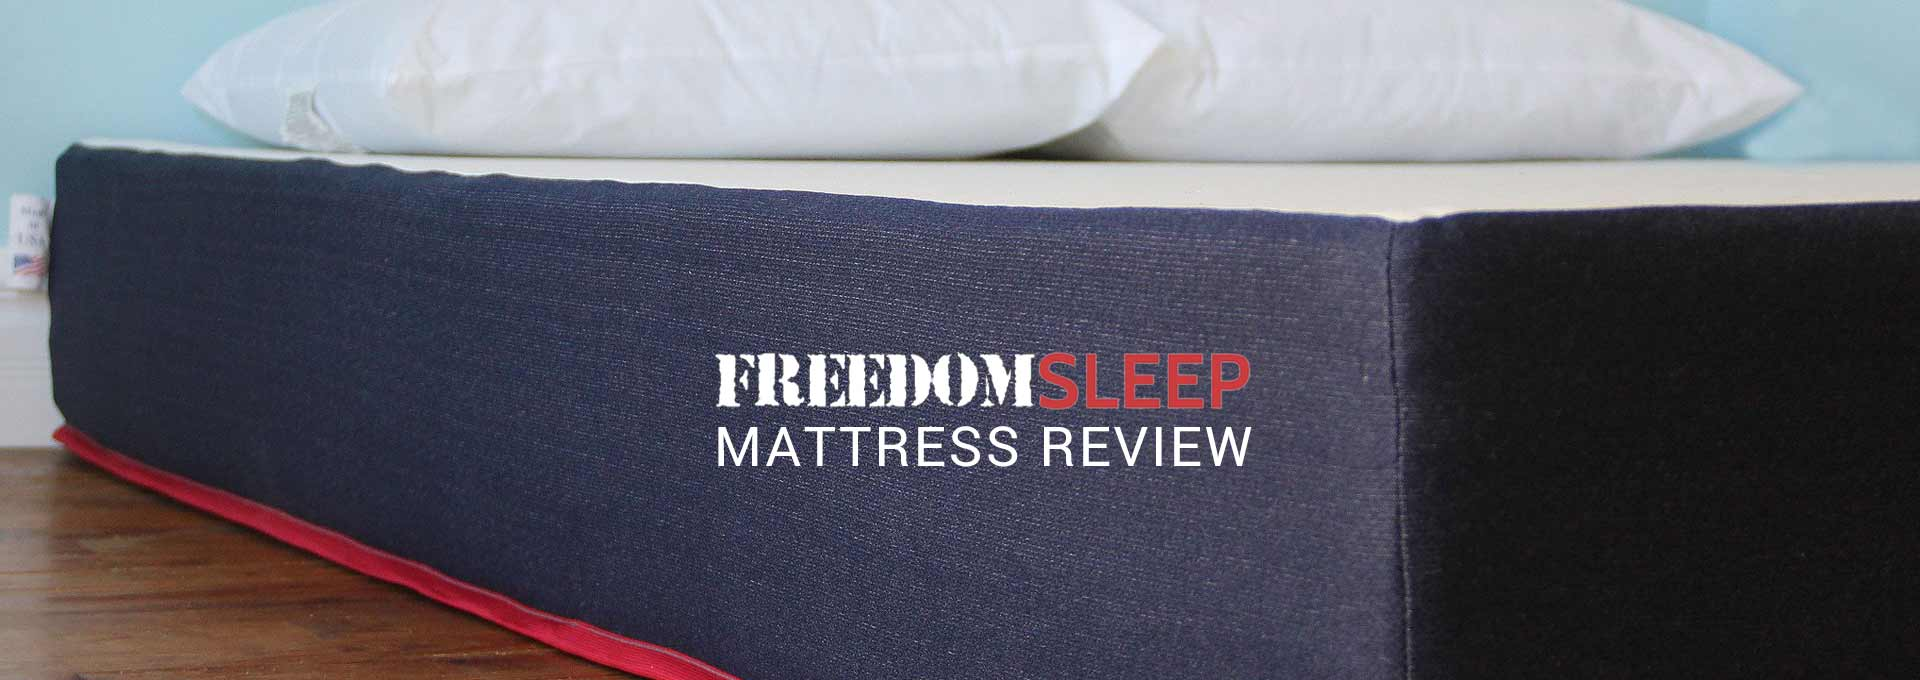 Freedom has a place to sleep in our Freedom Sleep Mattress Review